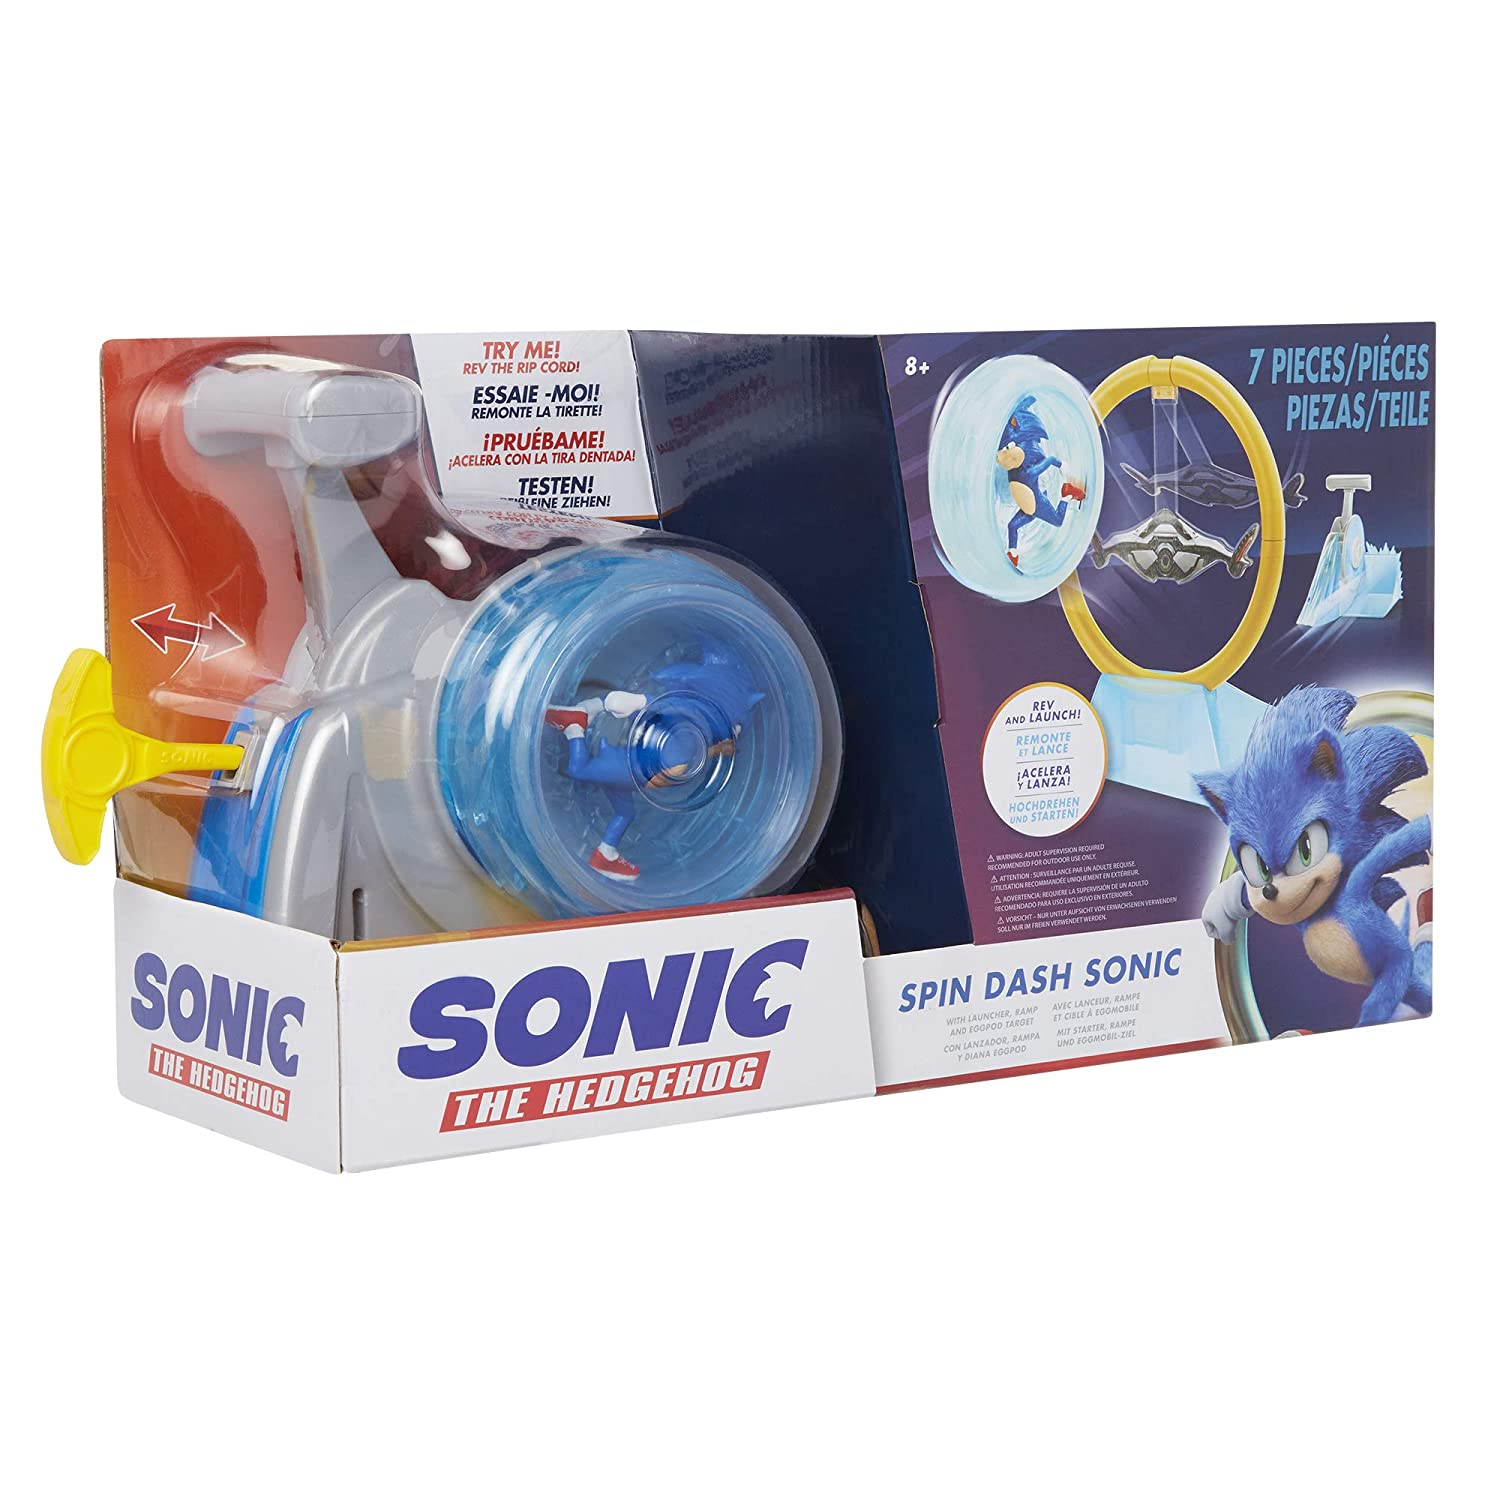 Sonic The Hedgehog Spin Dash Sonic REV and Launch Super Sonic Speed